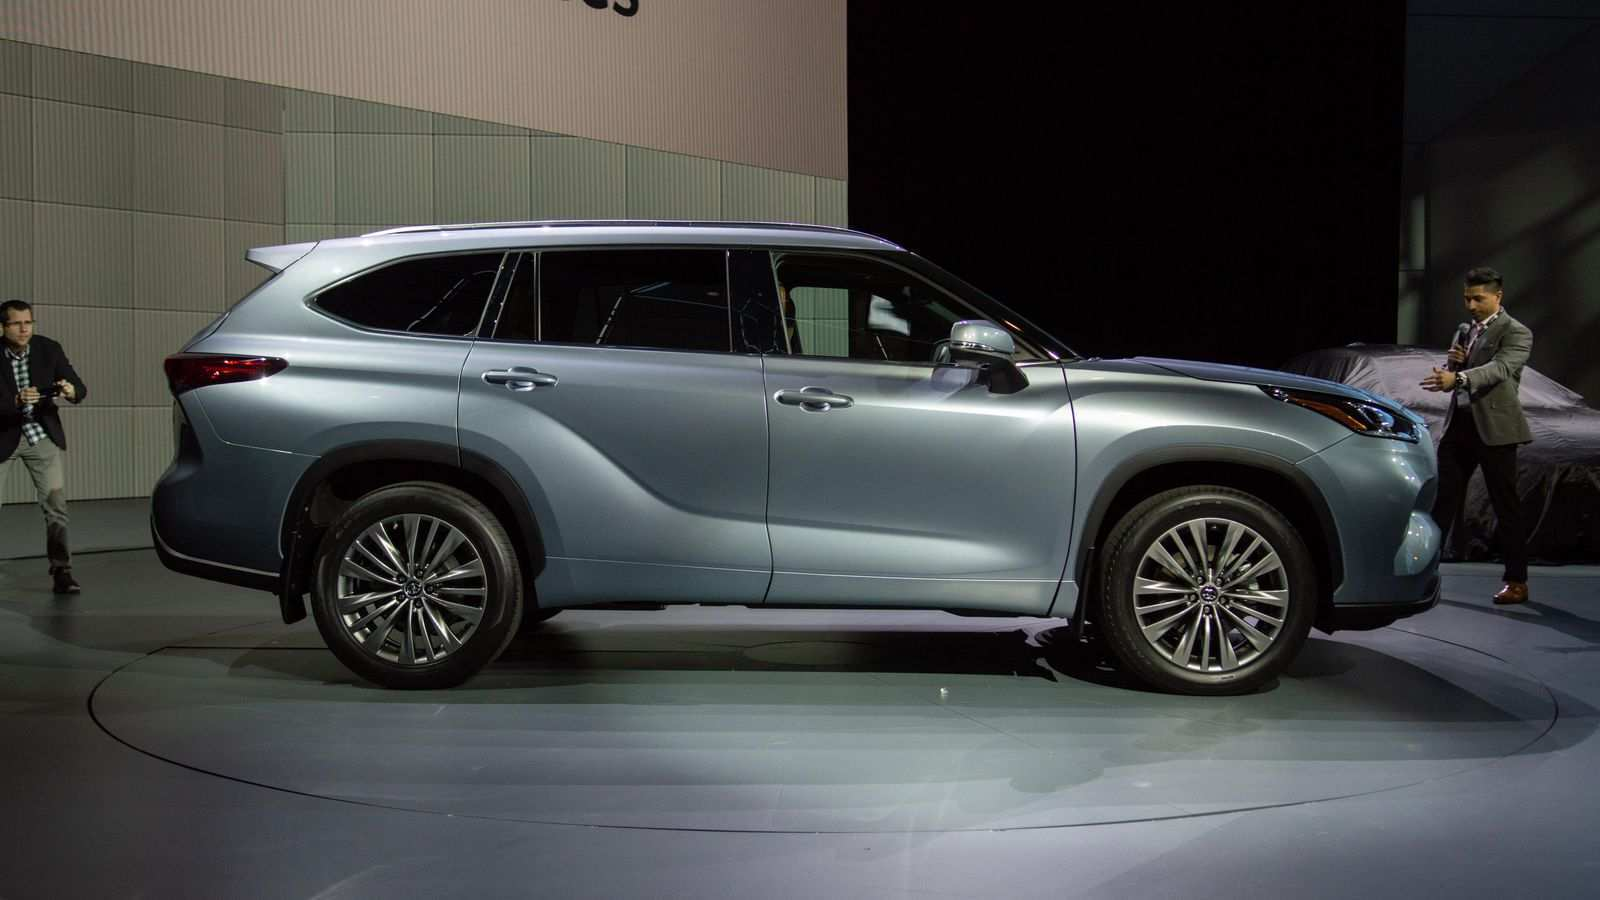 58 The Best Toyota Highlander 2020 Release Date Price